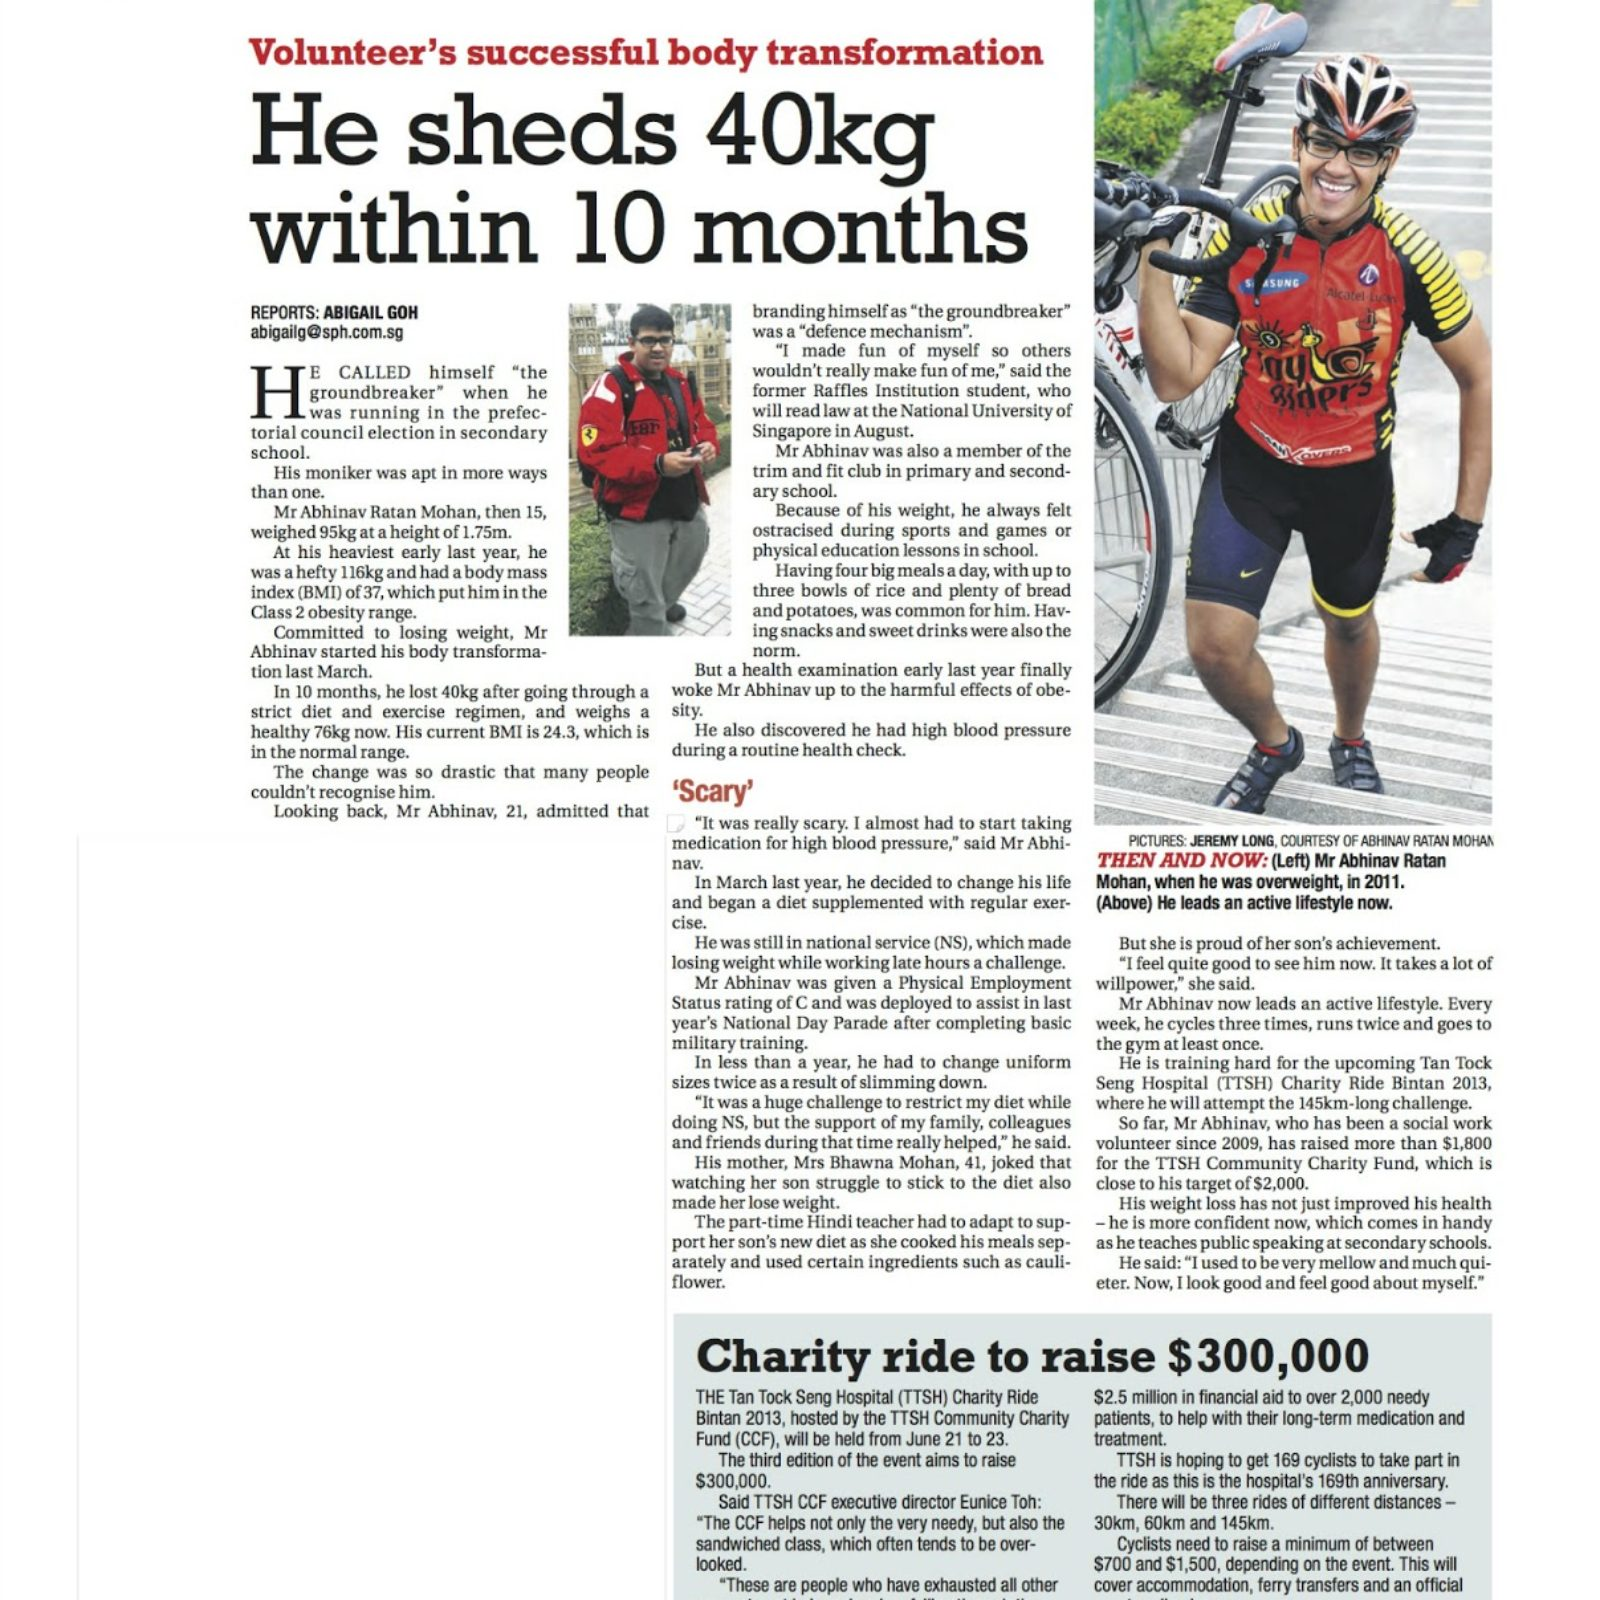 070513 TNP He sheds 40kg within 10 months